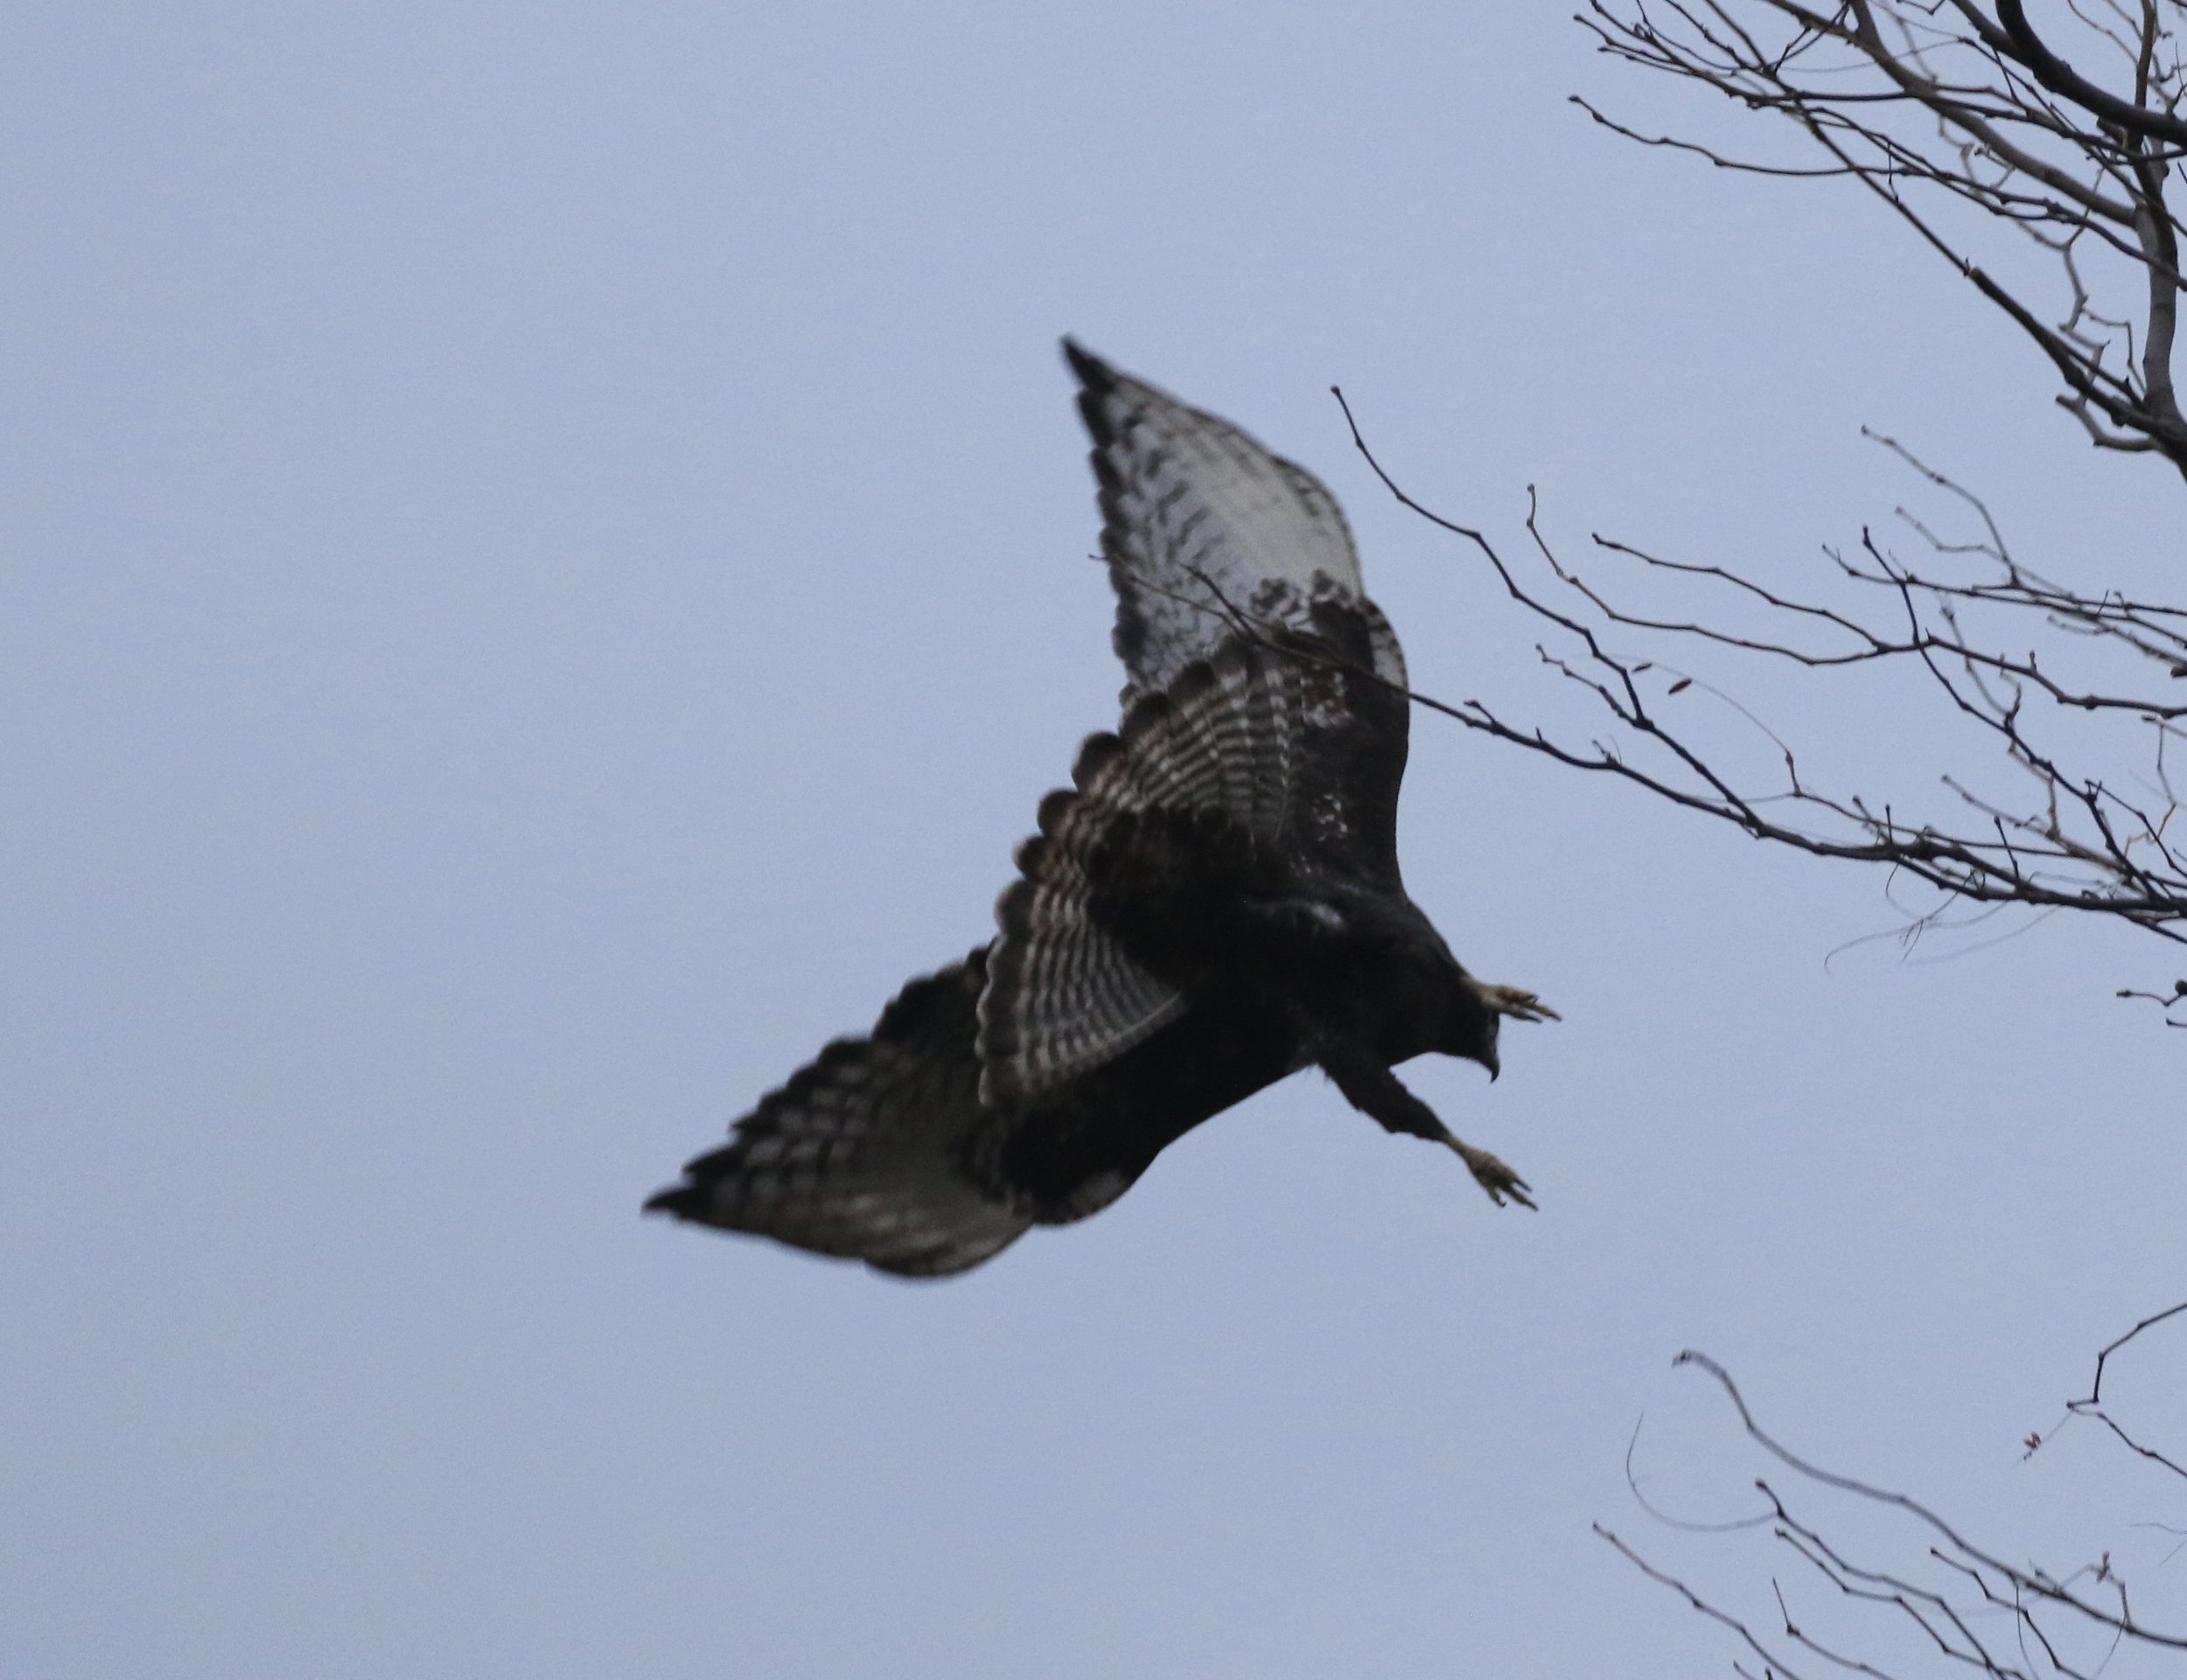 This adult Harlan's had an amazing banded/barred tail, which nearly had me thinking Rough-legged Hawk for a second. (Notice the bare legs, ruling out Rough-leg)